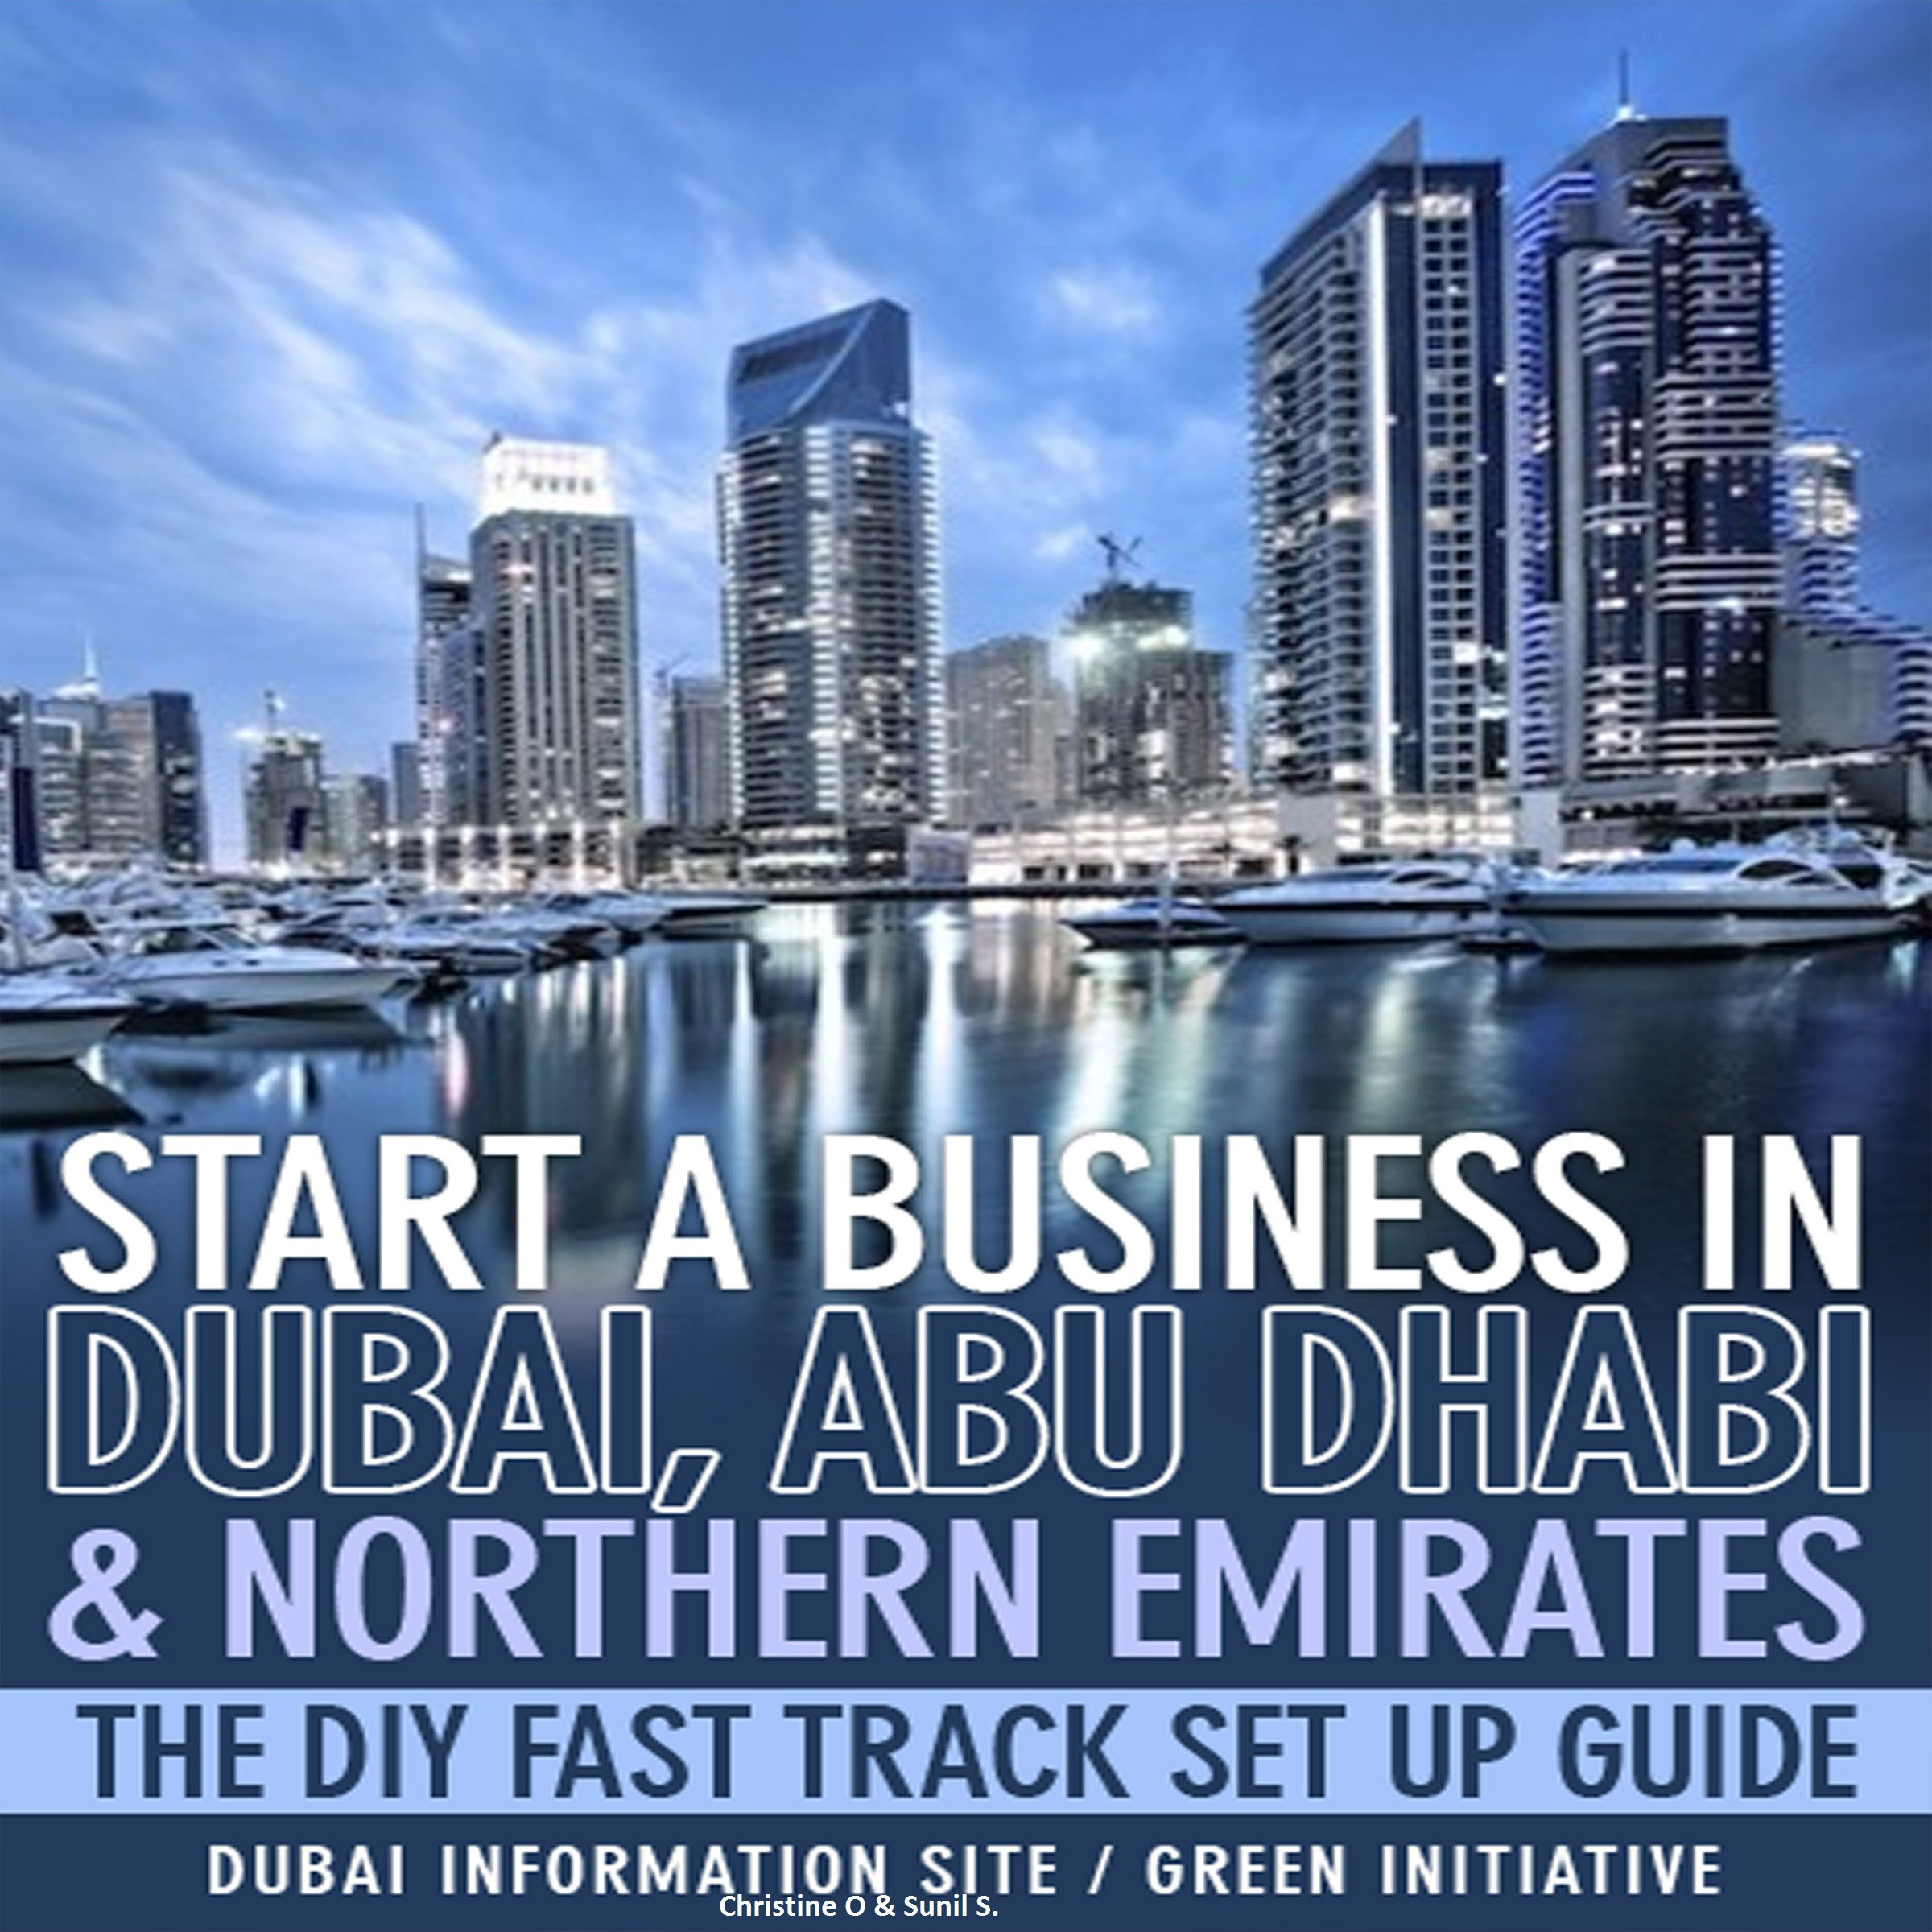 Start a Business in Dubai, Abu Dhabi & Northern Emirates: The DIY Fast Track Set up Guide